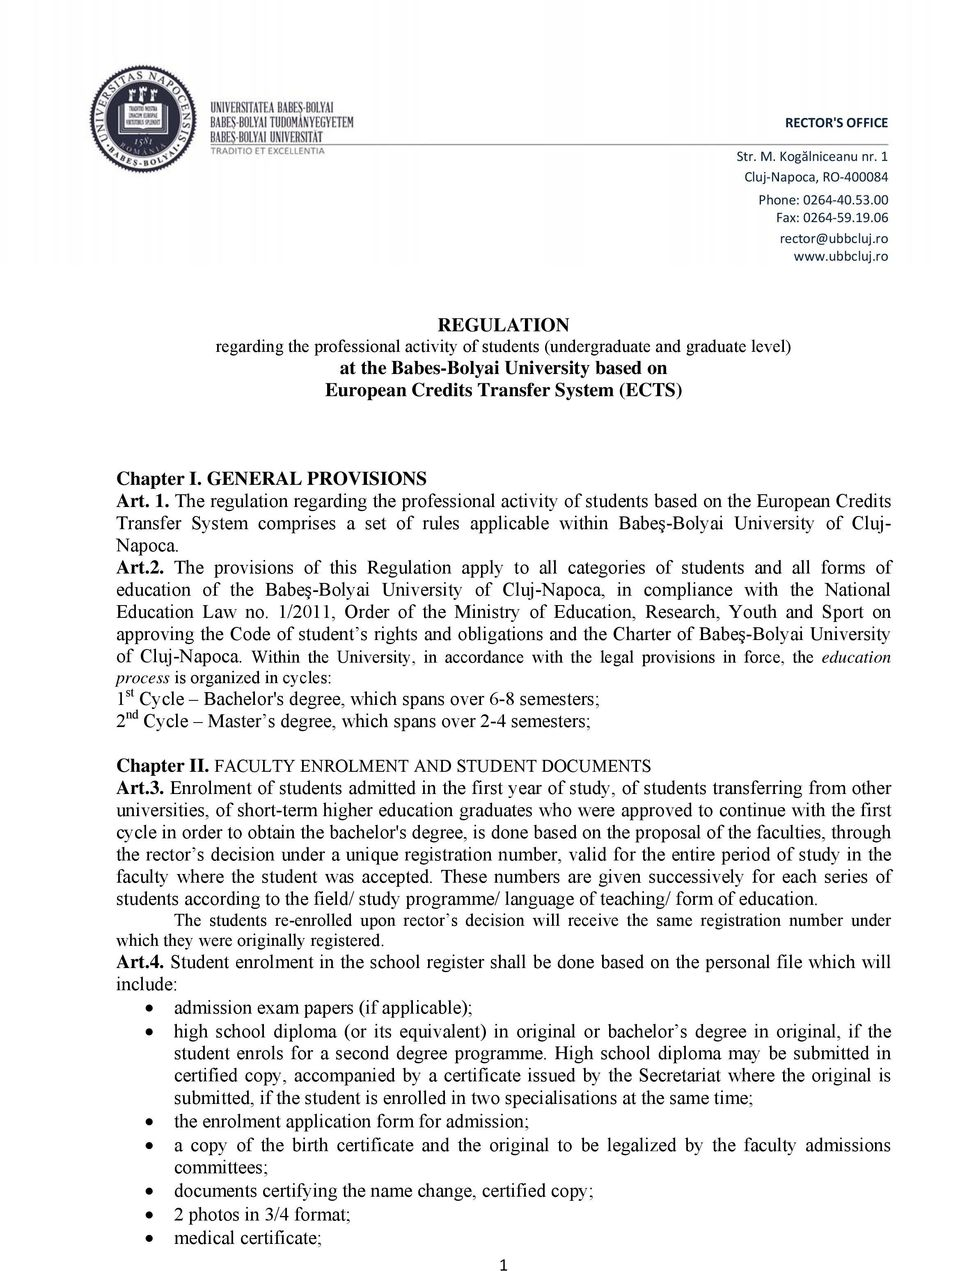 ro REGULATION regarding the professional activity of students (undergraduate and graduate level) at the Babes-Bolyai University based on European Credits Transfer System (ECTS) Chapter I.